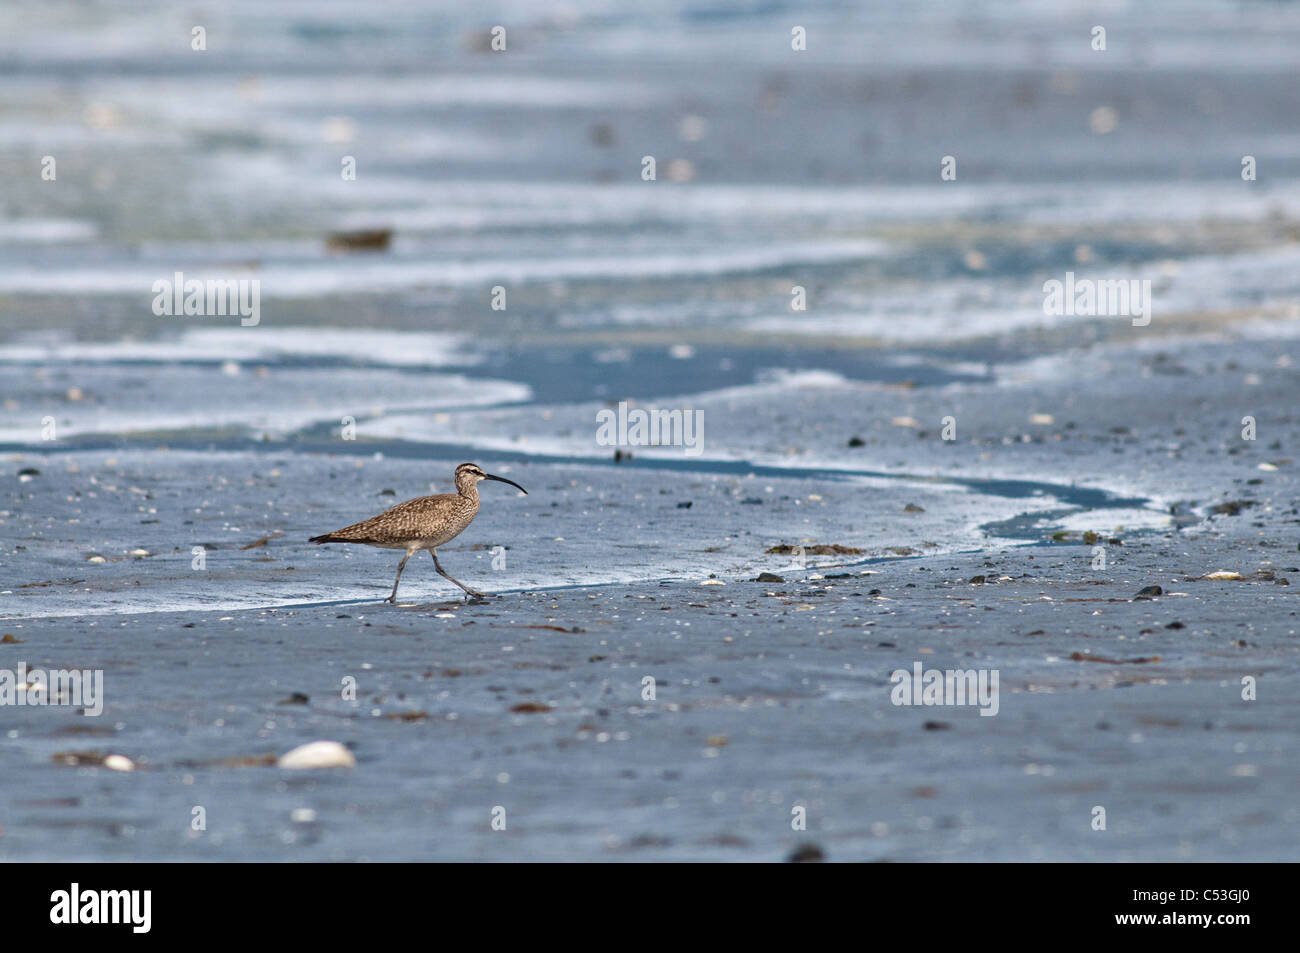 A lone whimbrel walks along the mud flats of Hartney Bay, Cordova, Prince William Sound, Southcentral Alaska, Spring - Stock Image